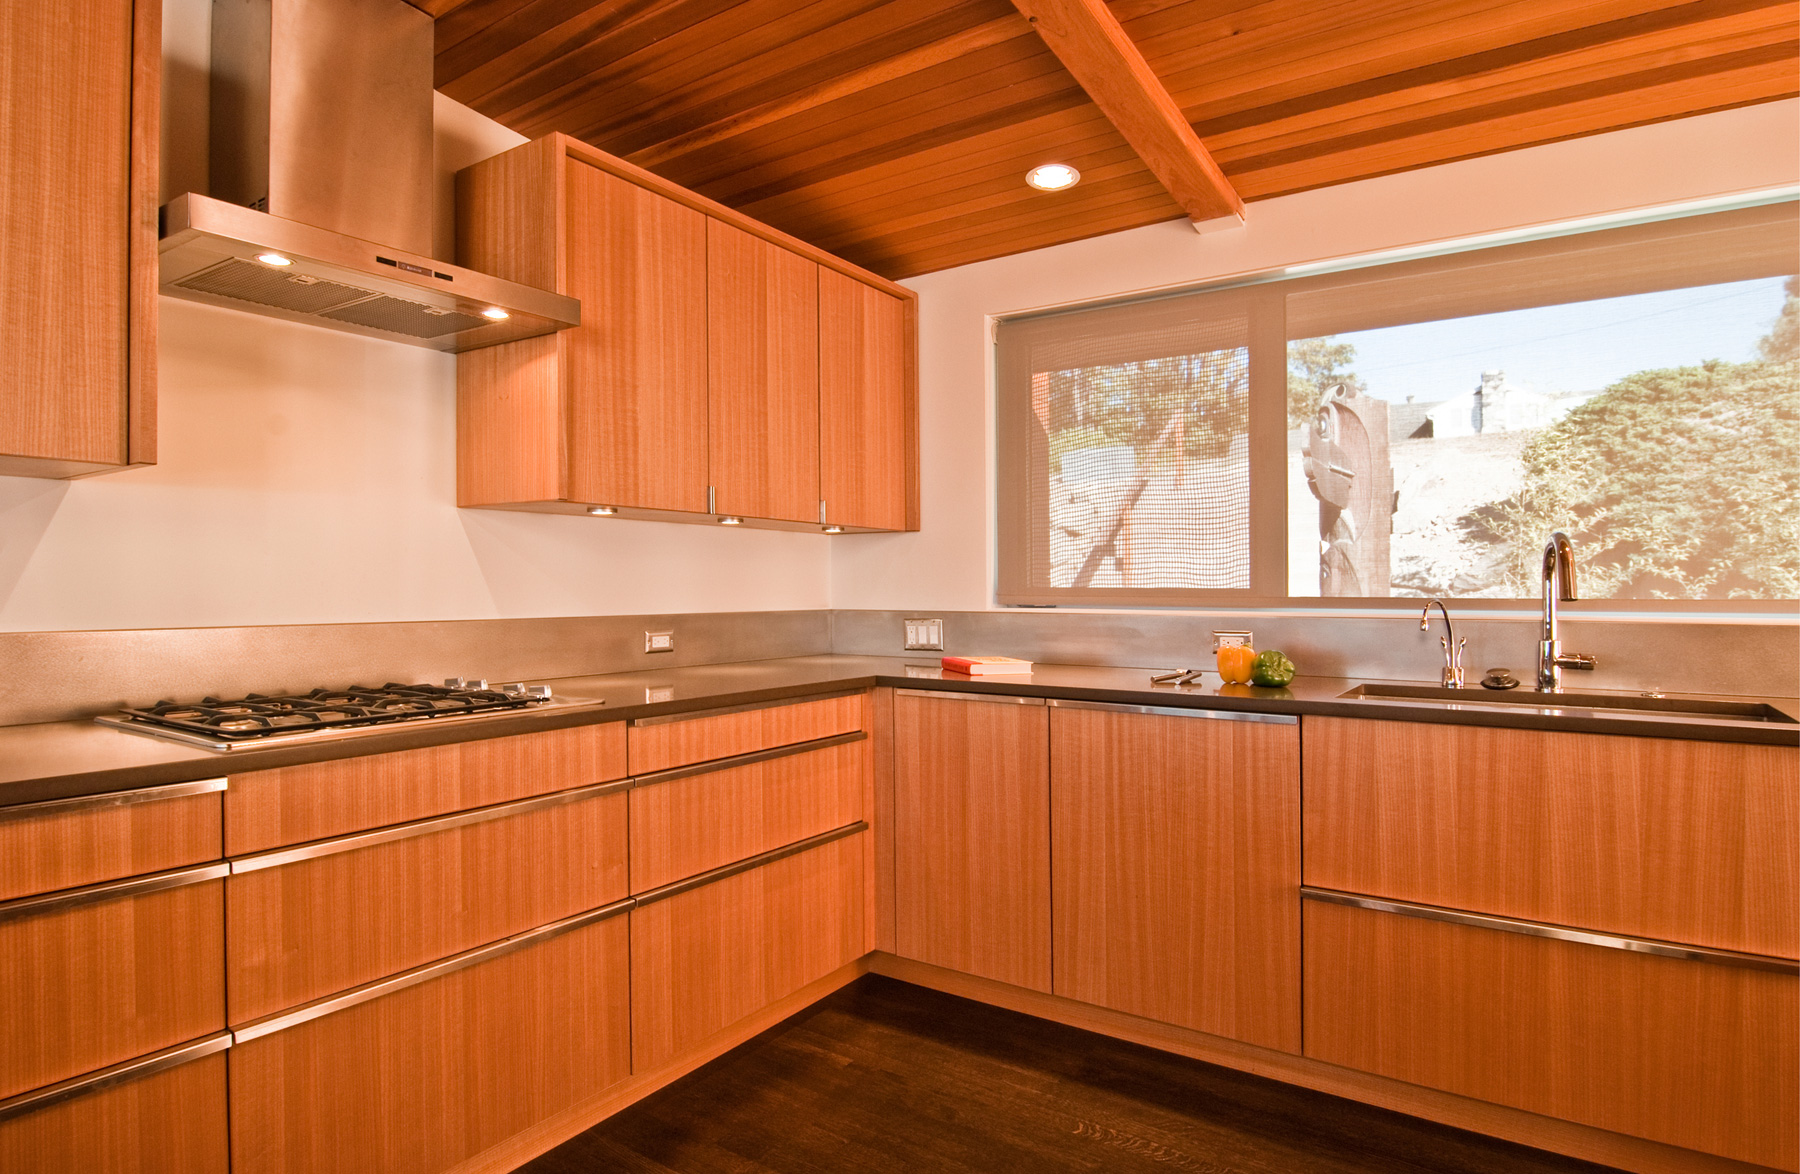 Mid century modern kitchen cabinets recommendation homesfeed for Modern kitchen cabinets